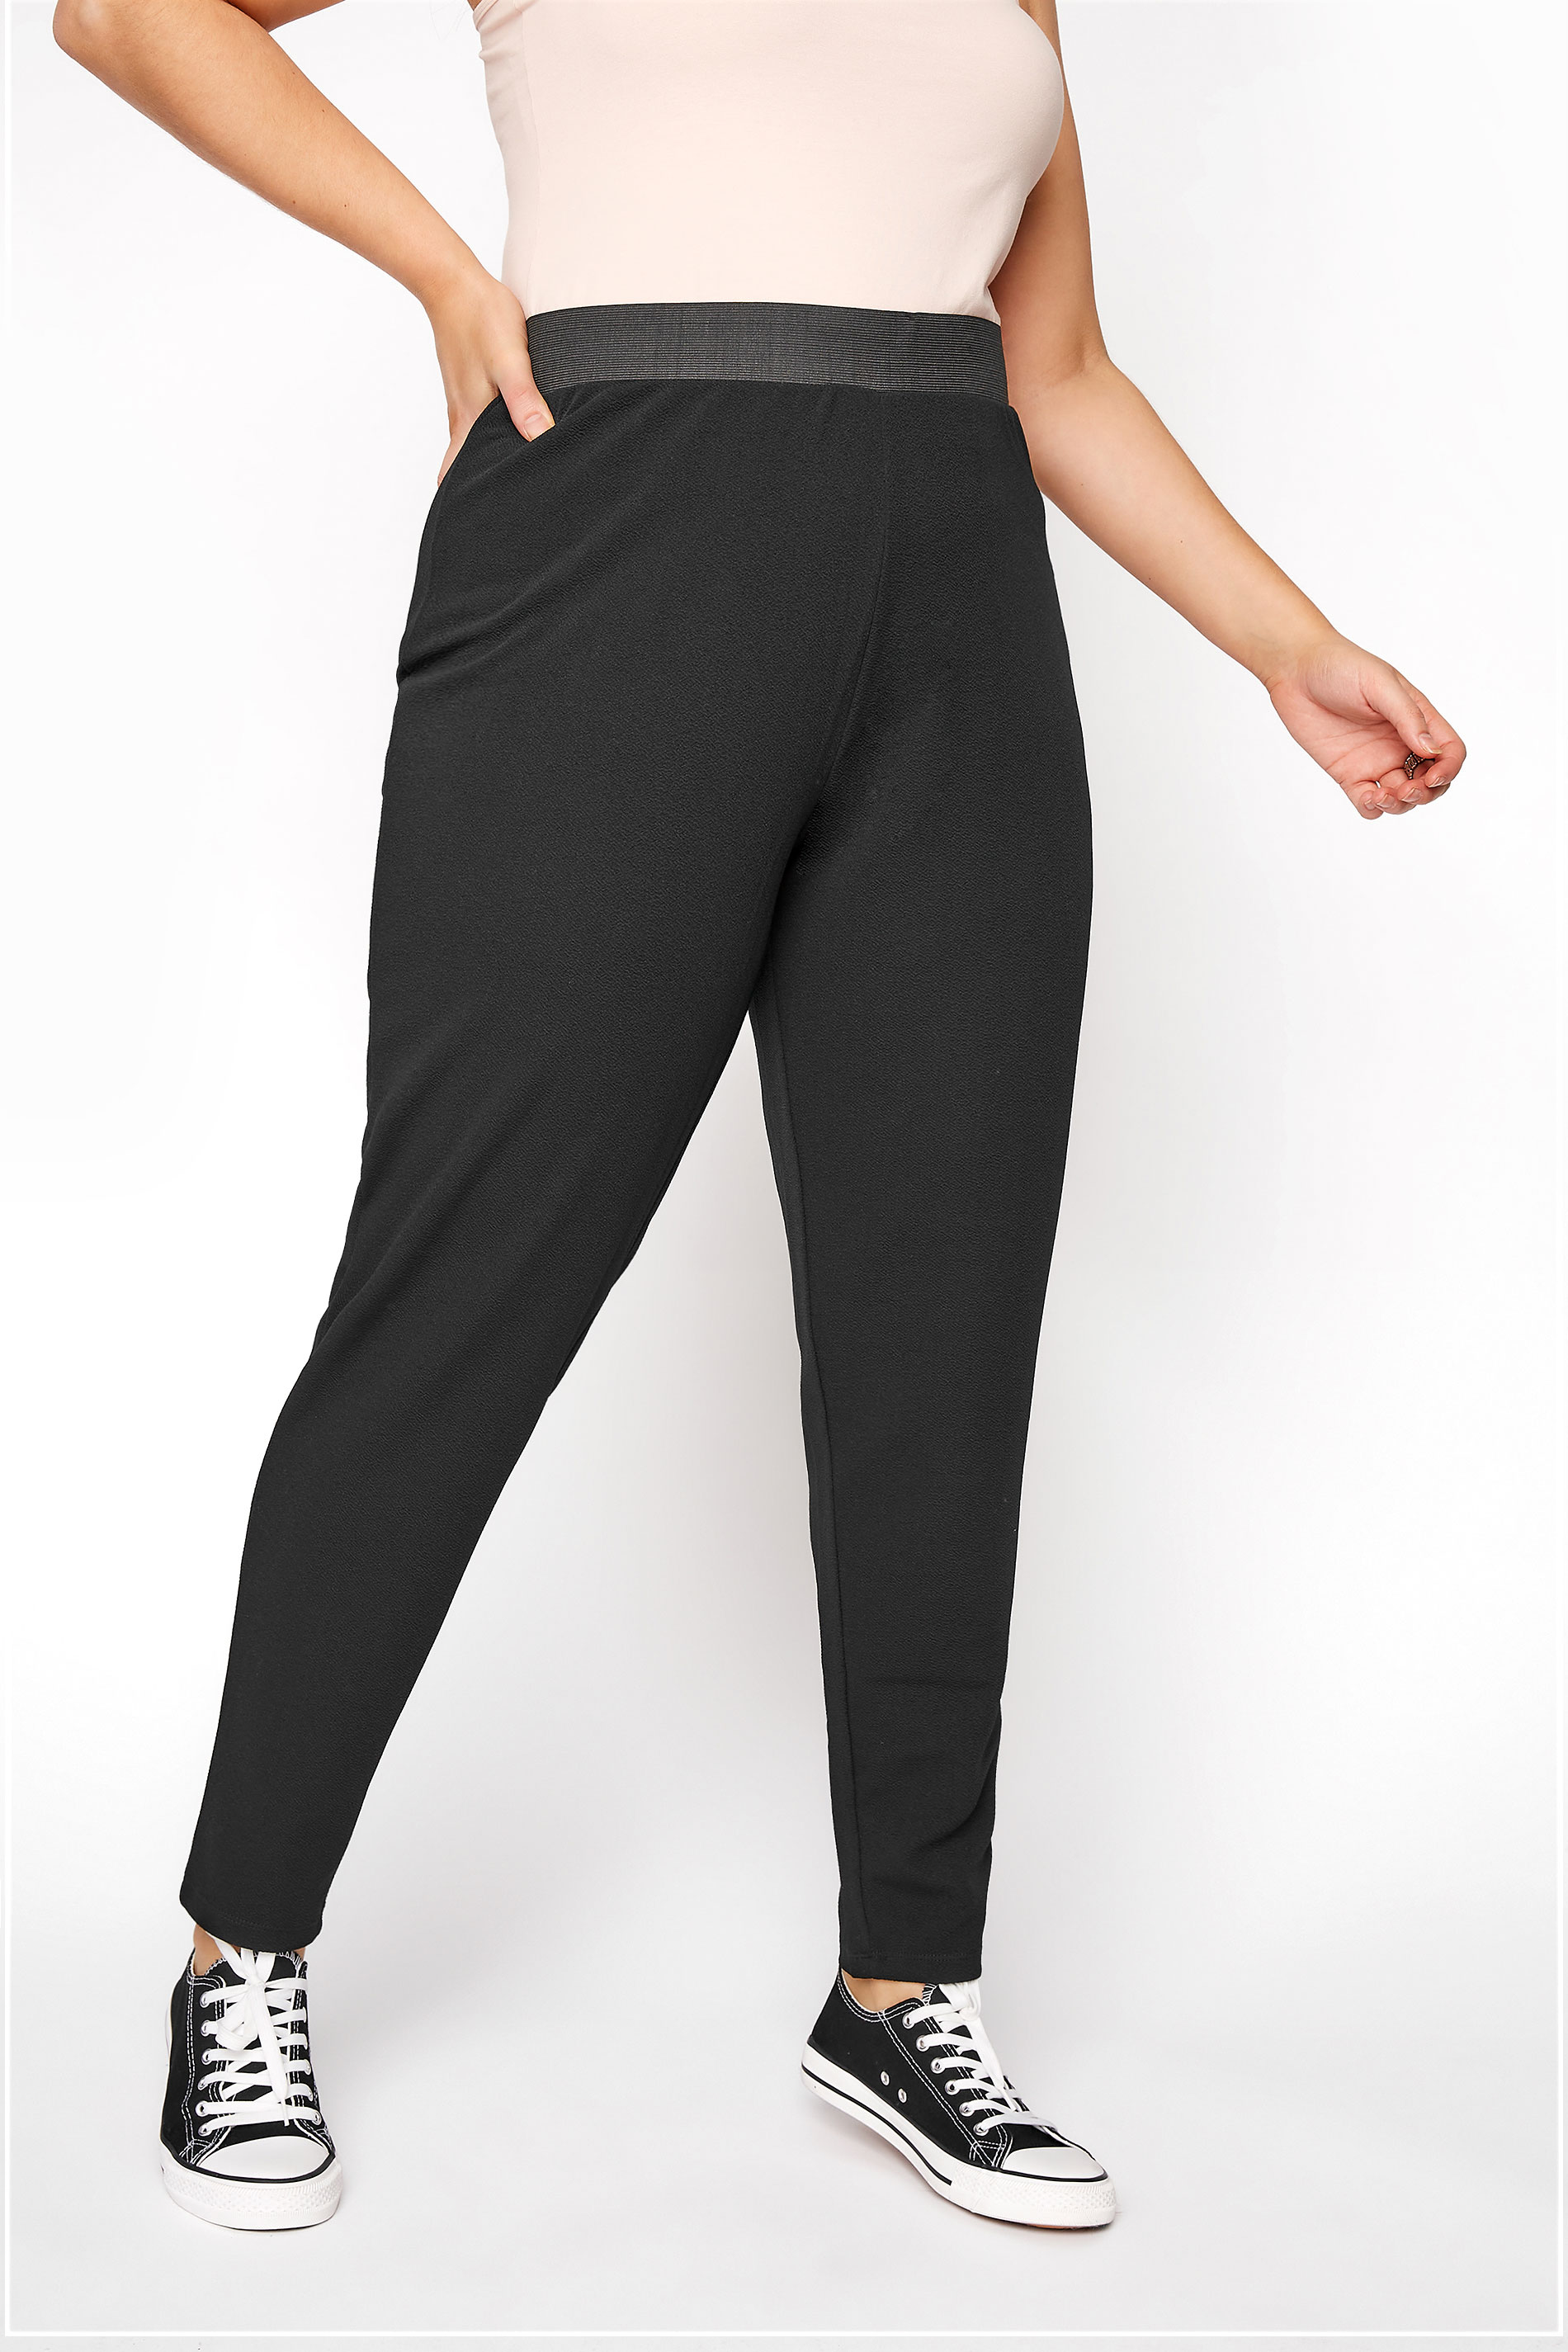 YOURS LONDON Black Tapered Trousers_B.jpg